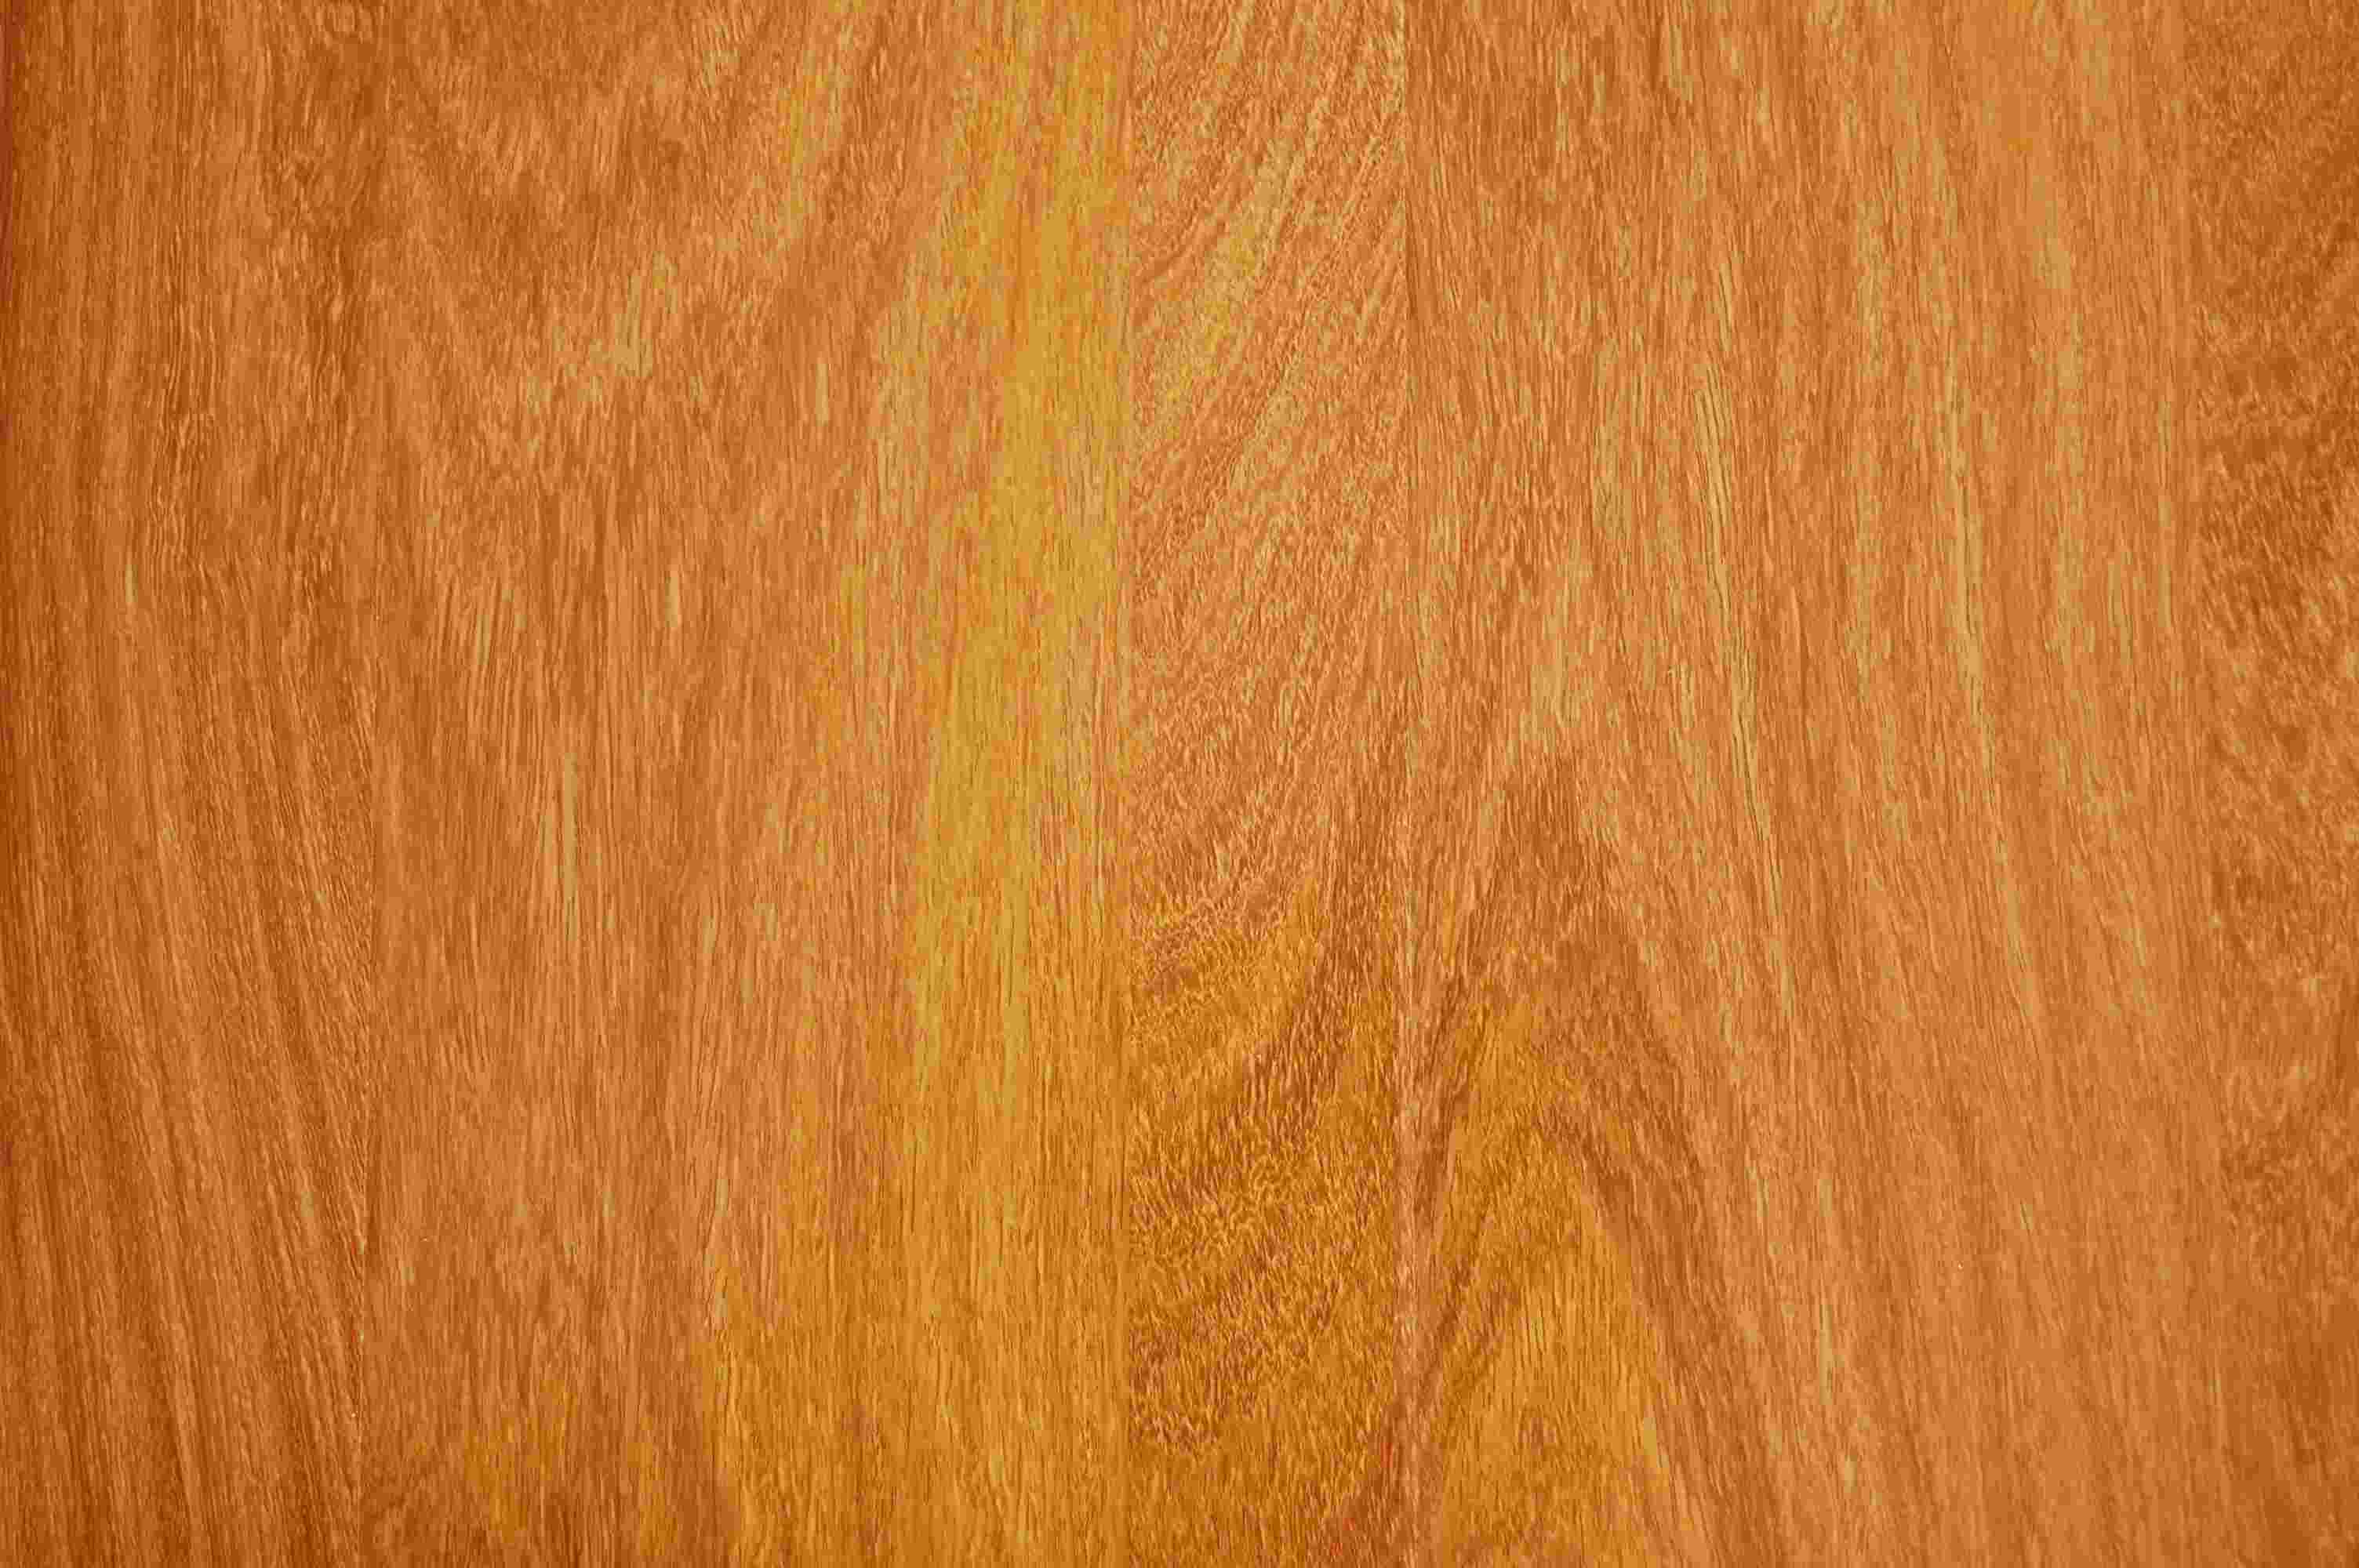 Engineered hardwood vs laminate wood flooring wood floors for Hard laminate flooring